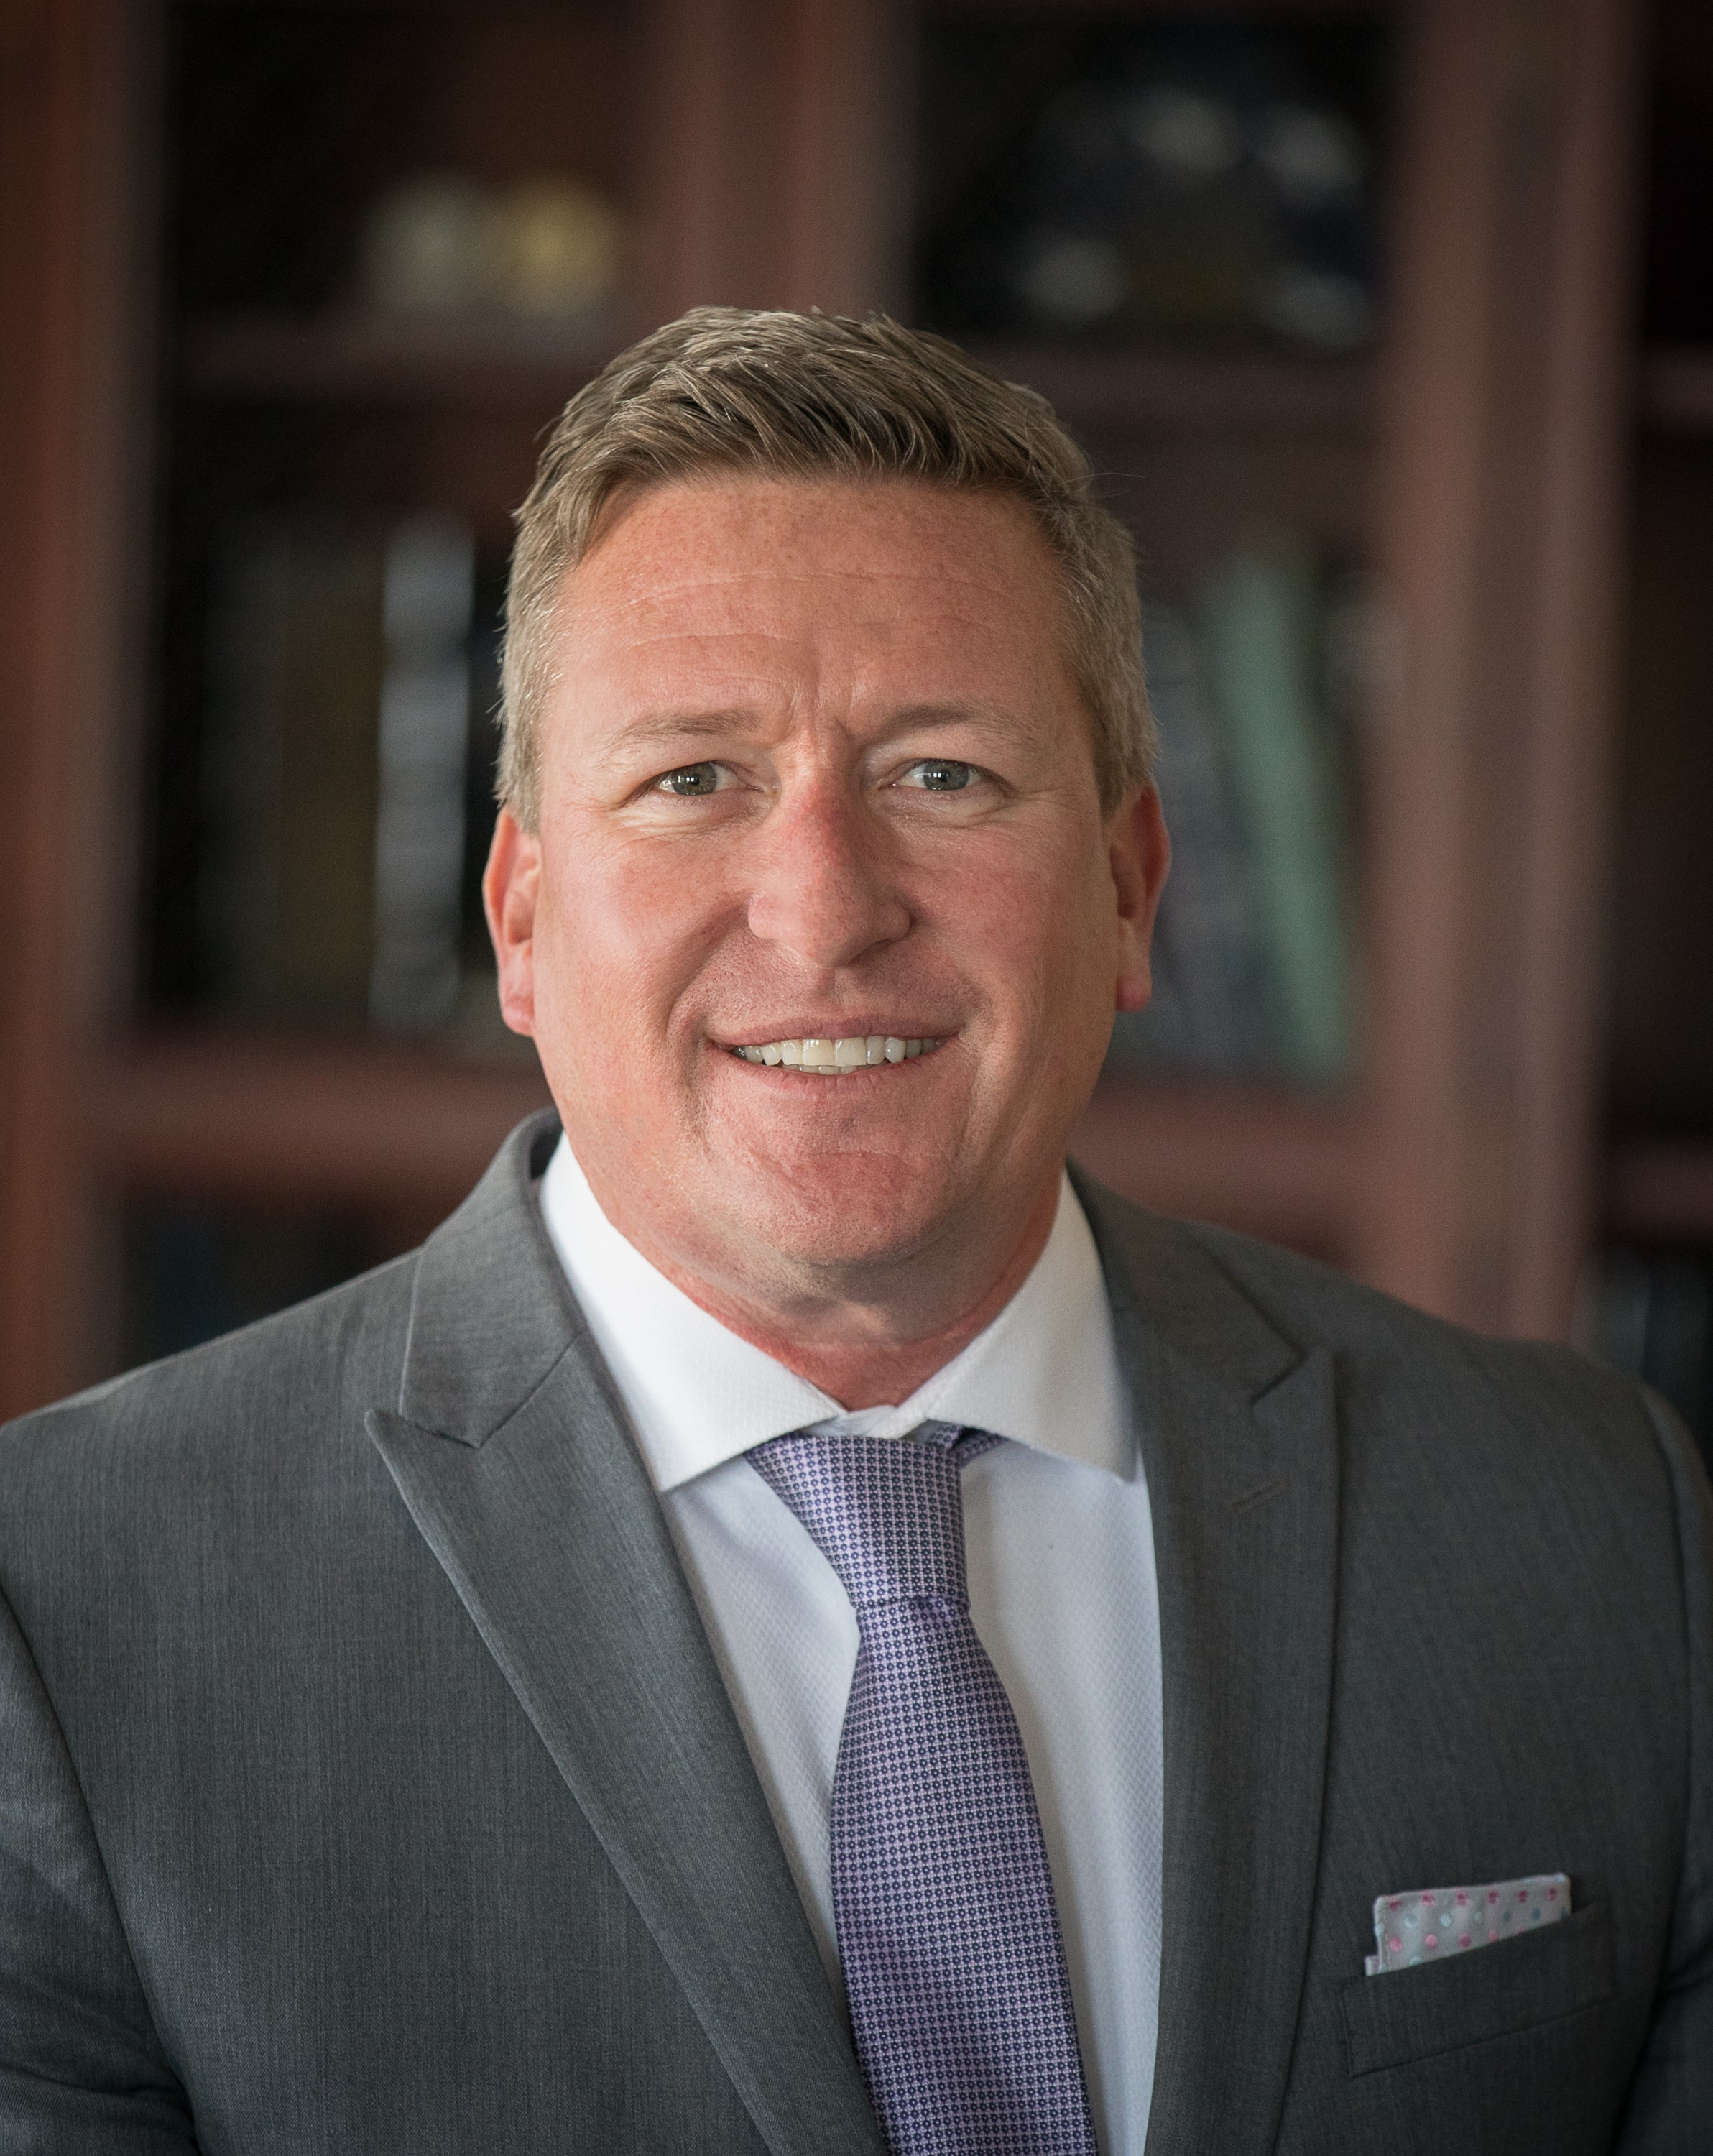 A photo of Mike Caldwell. The mayor of Ogden city, Utah.